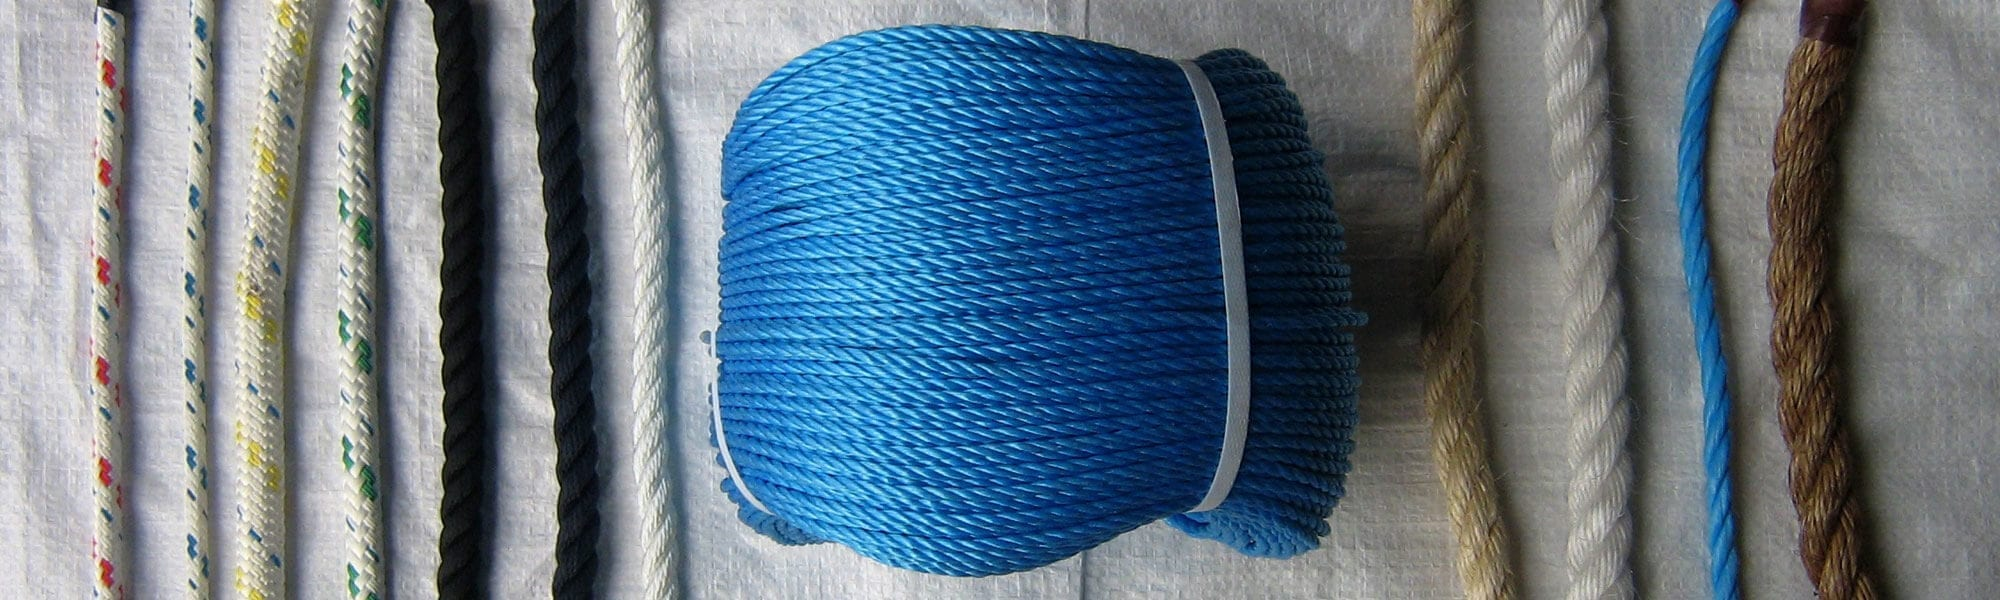 Nylon & Fibre Rope